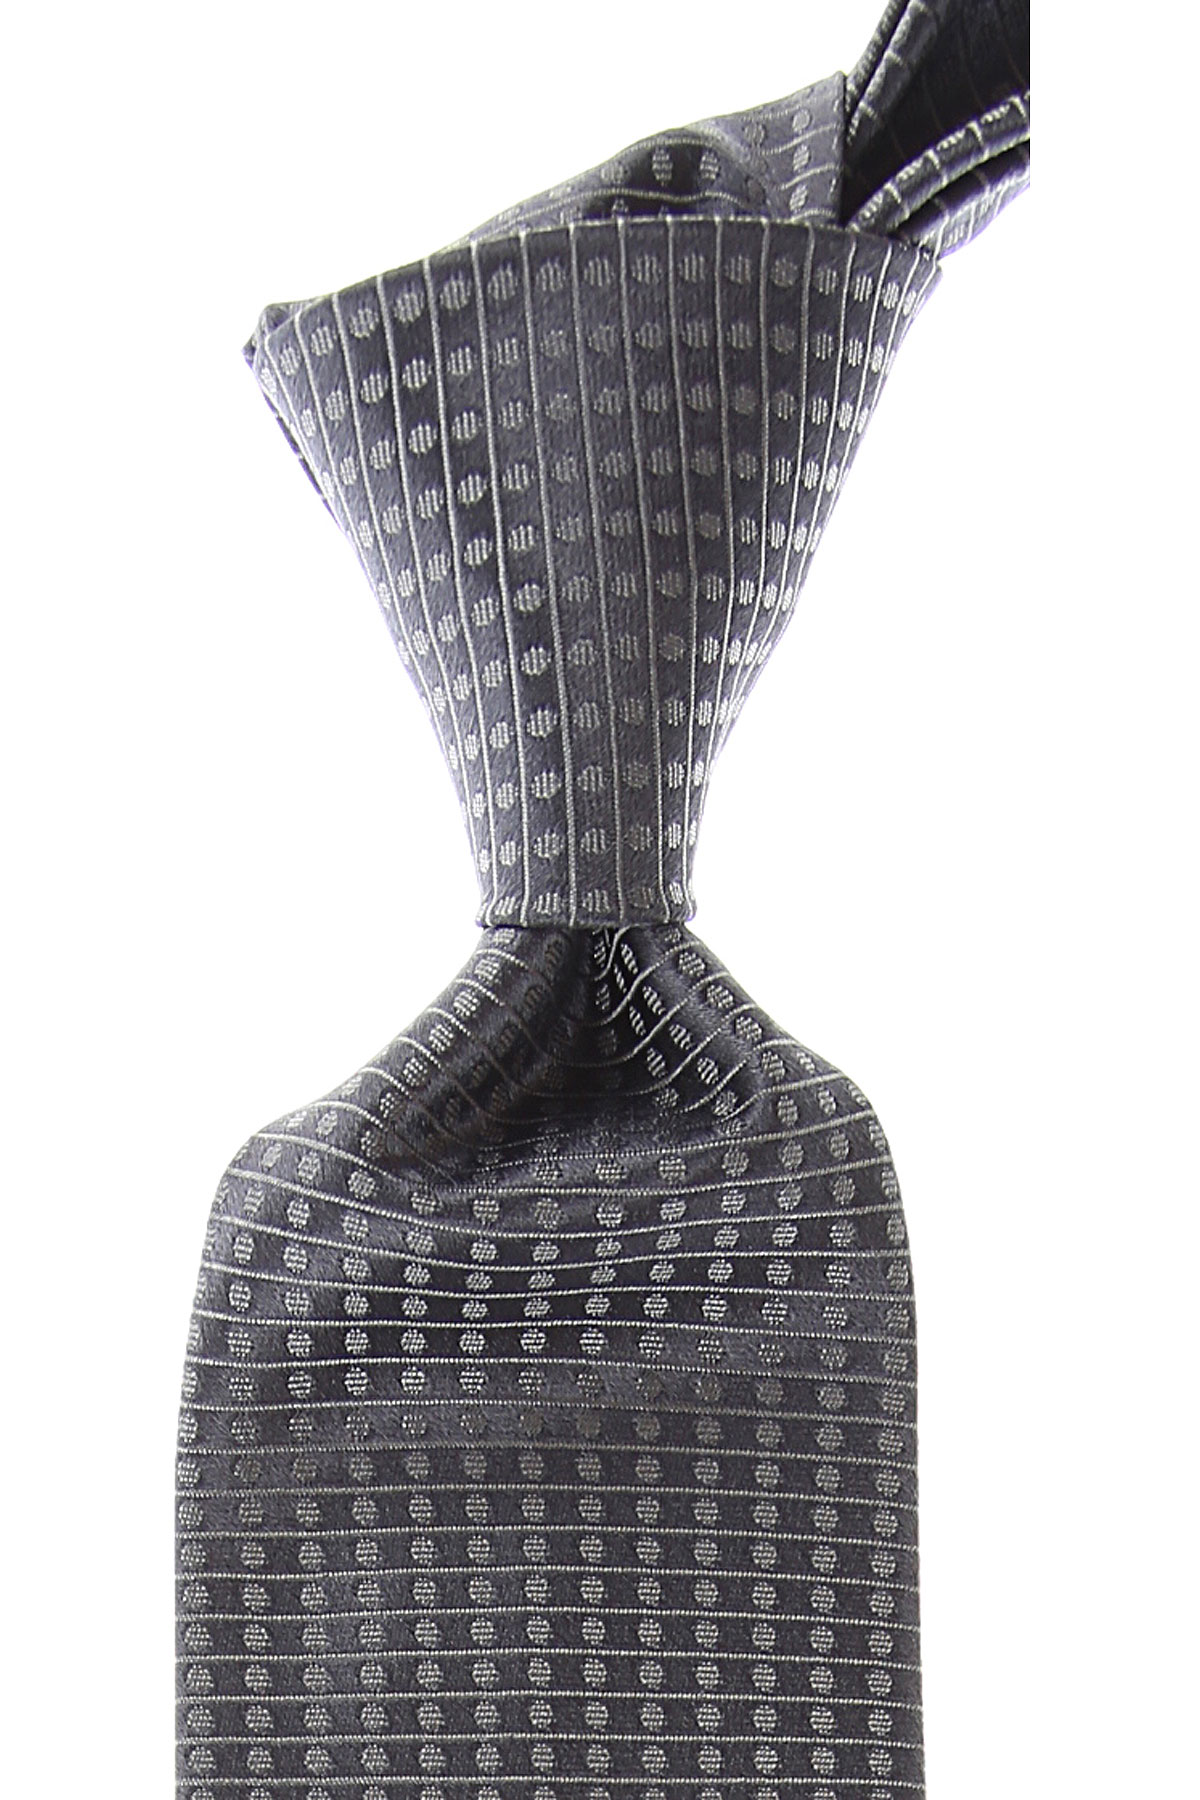 Giorgio_Armani_Ties_On_Sale_Chrome_Grey_Silk_2019